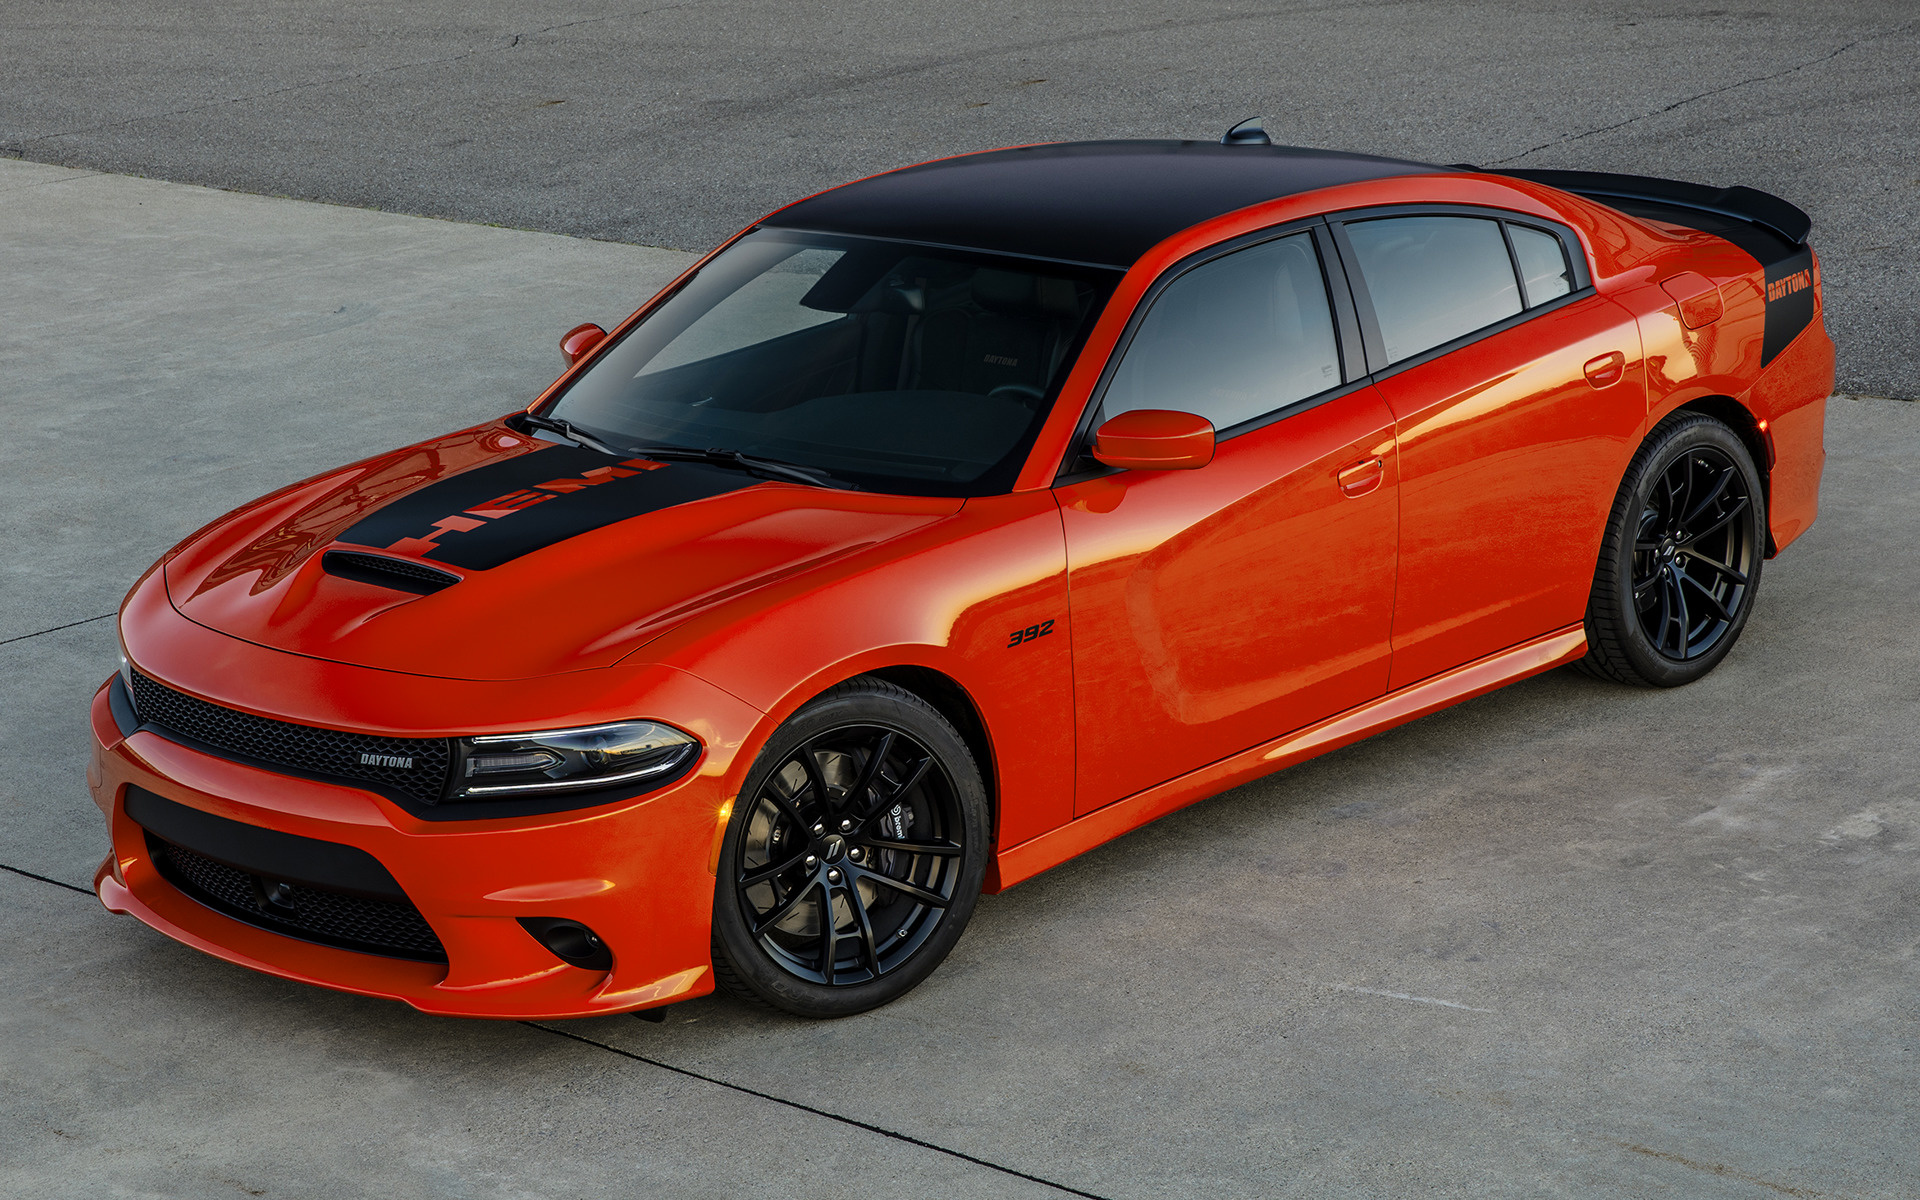 2017 Dodge Charger Daytona 392 besides 24 in addition Watch furthermore parison Test 2014 Bmw 335i Gt Vs 2015 Volvo V60 T6 R Design besides Four Door Dodge Challenger Srt8 Has Rear Gullwing Doors For Sale At 250000 107018. on 2015 dodge srt 10